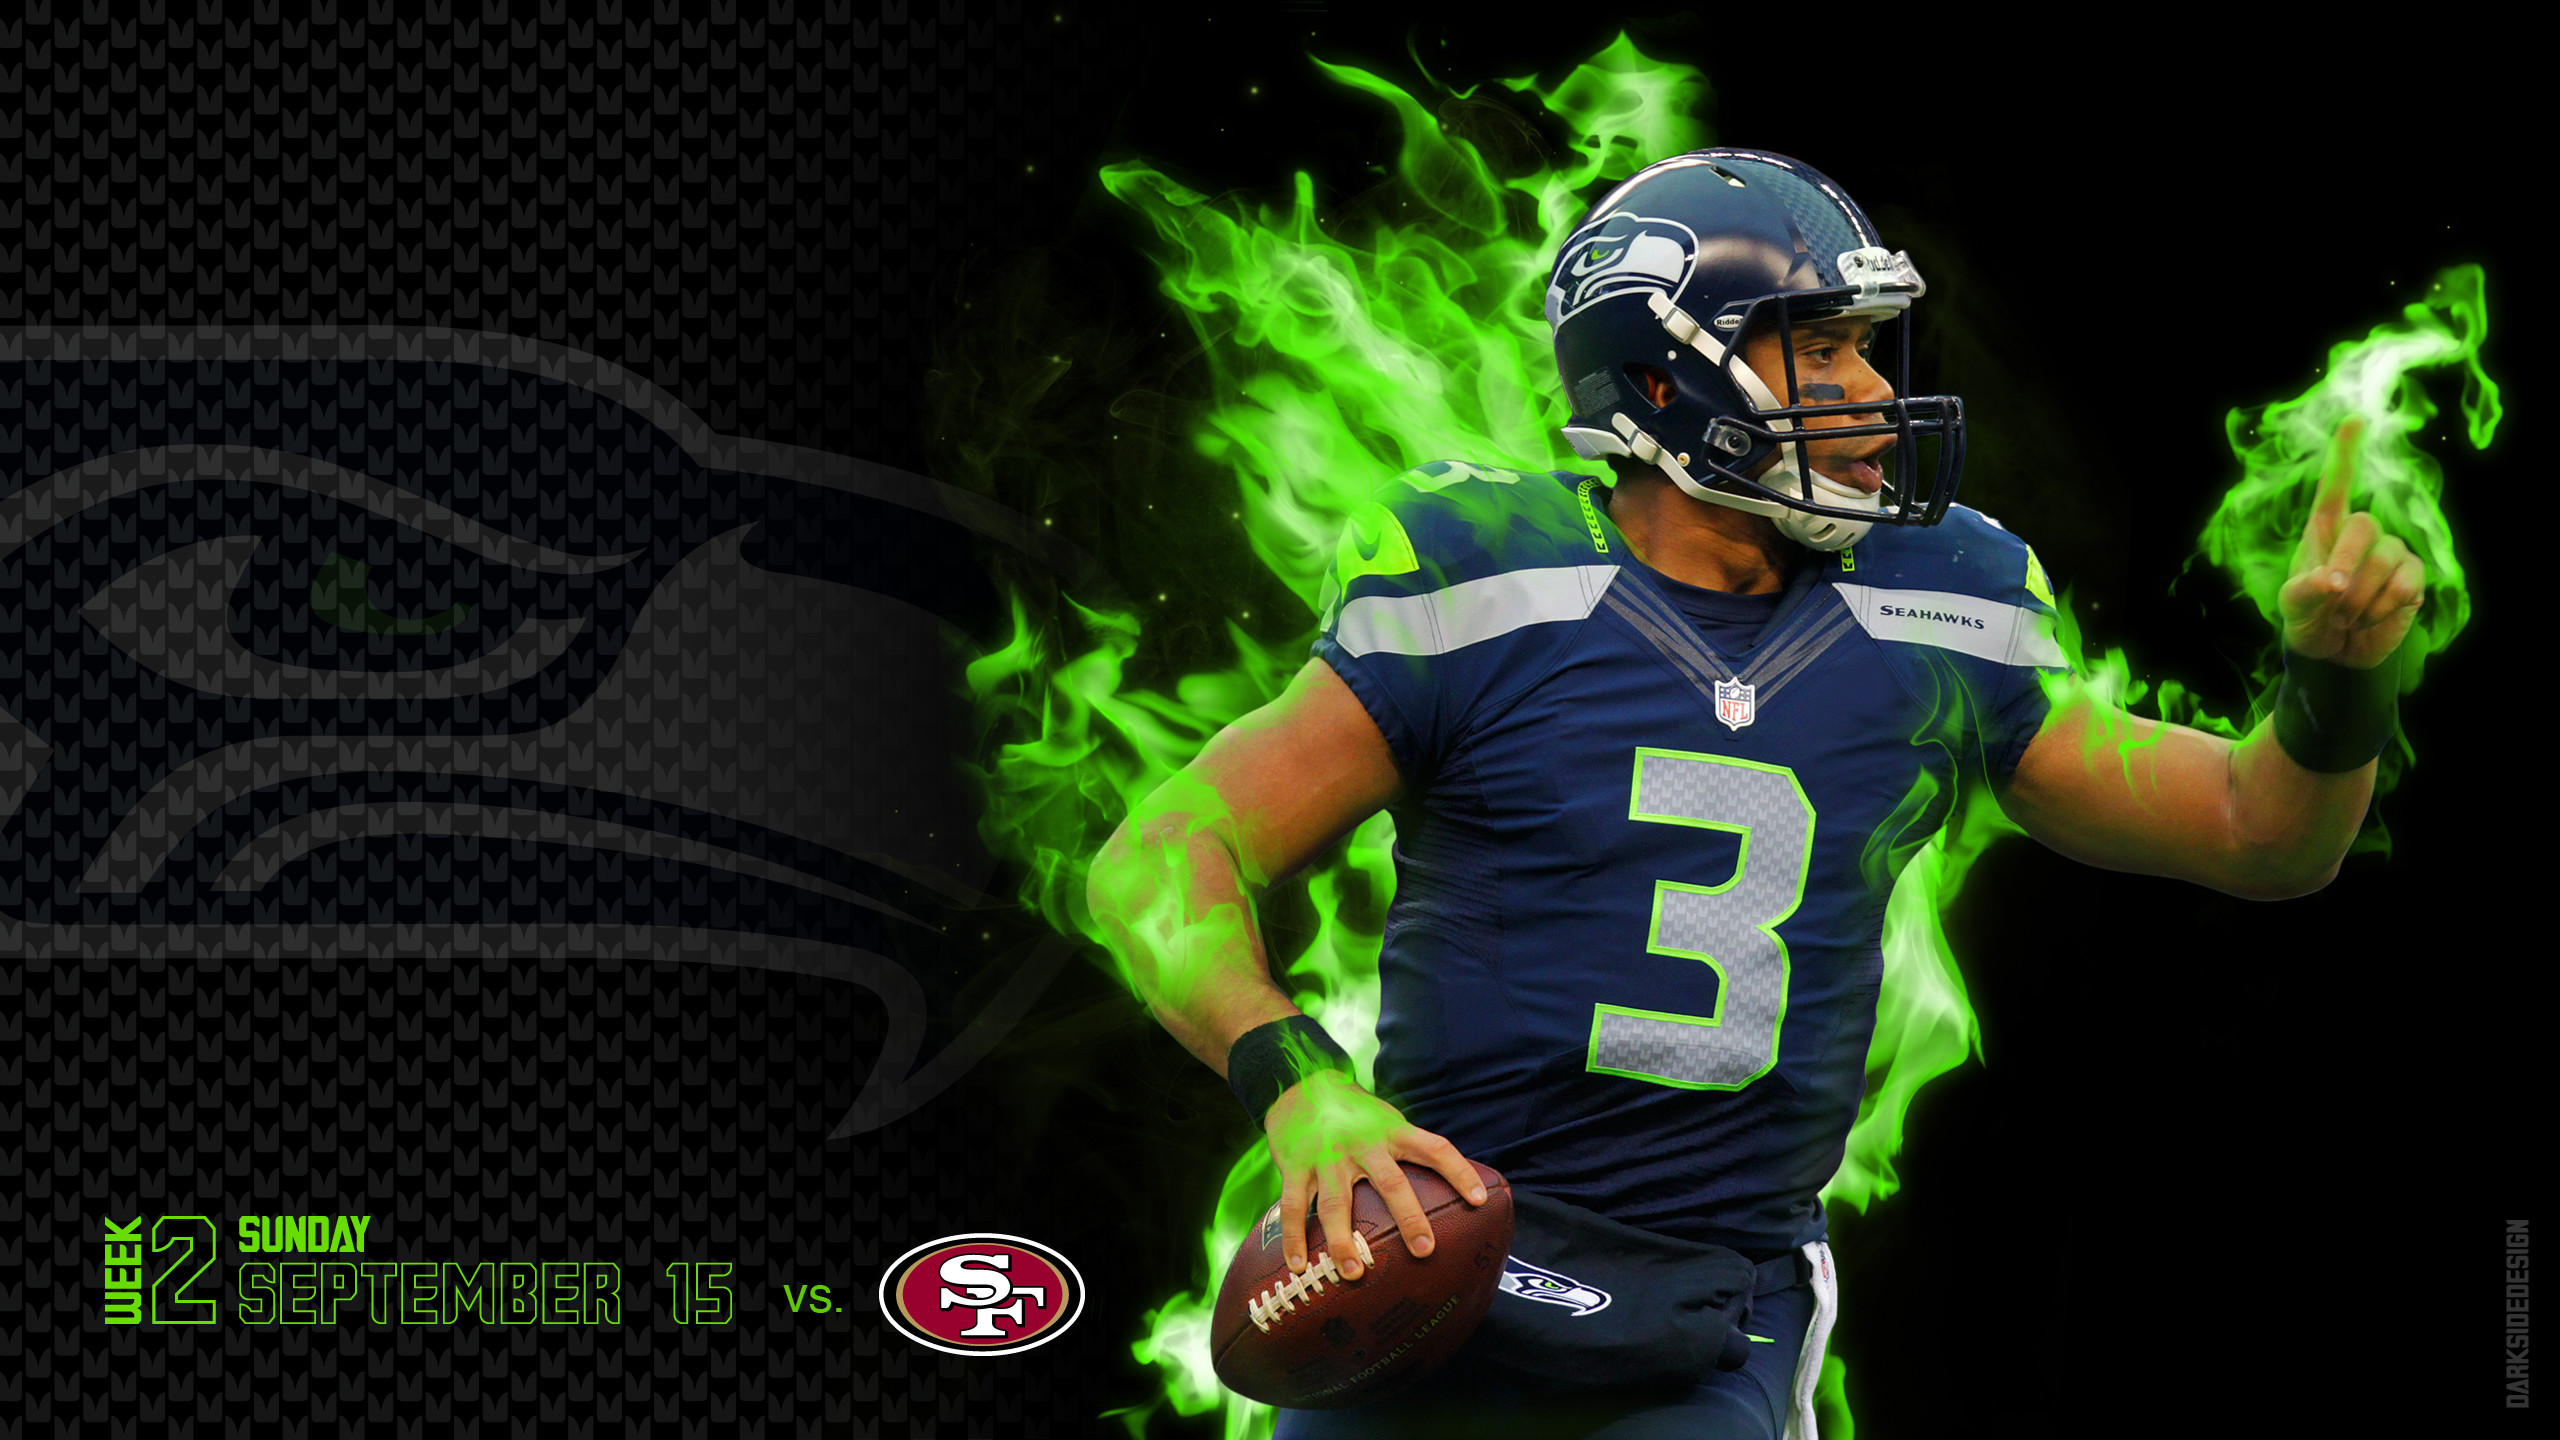 Cool Seattle Seahawks Wallpaper 76 Images